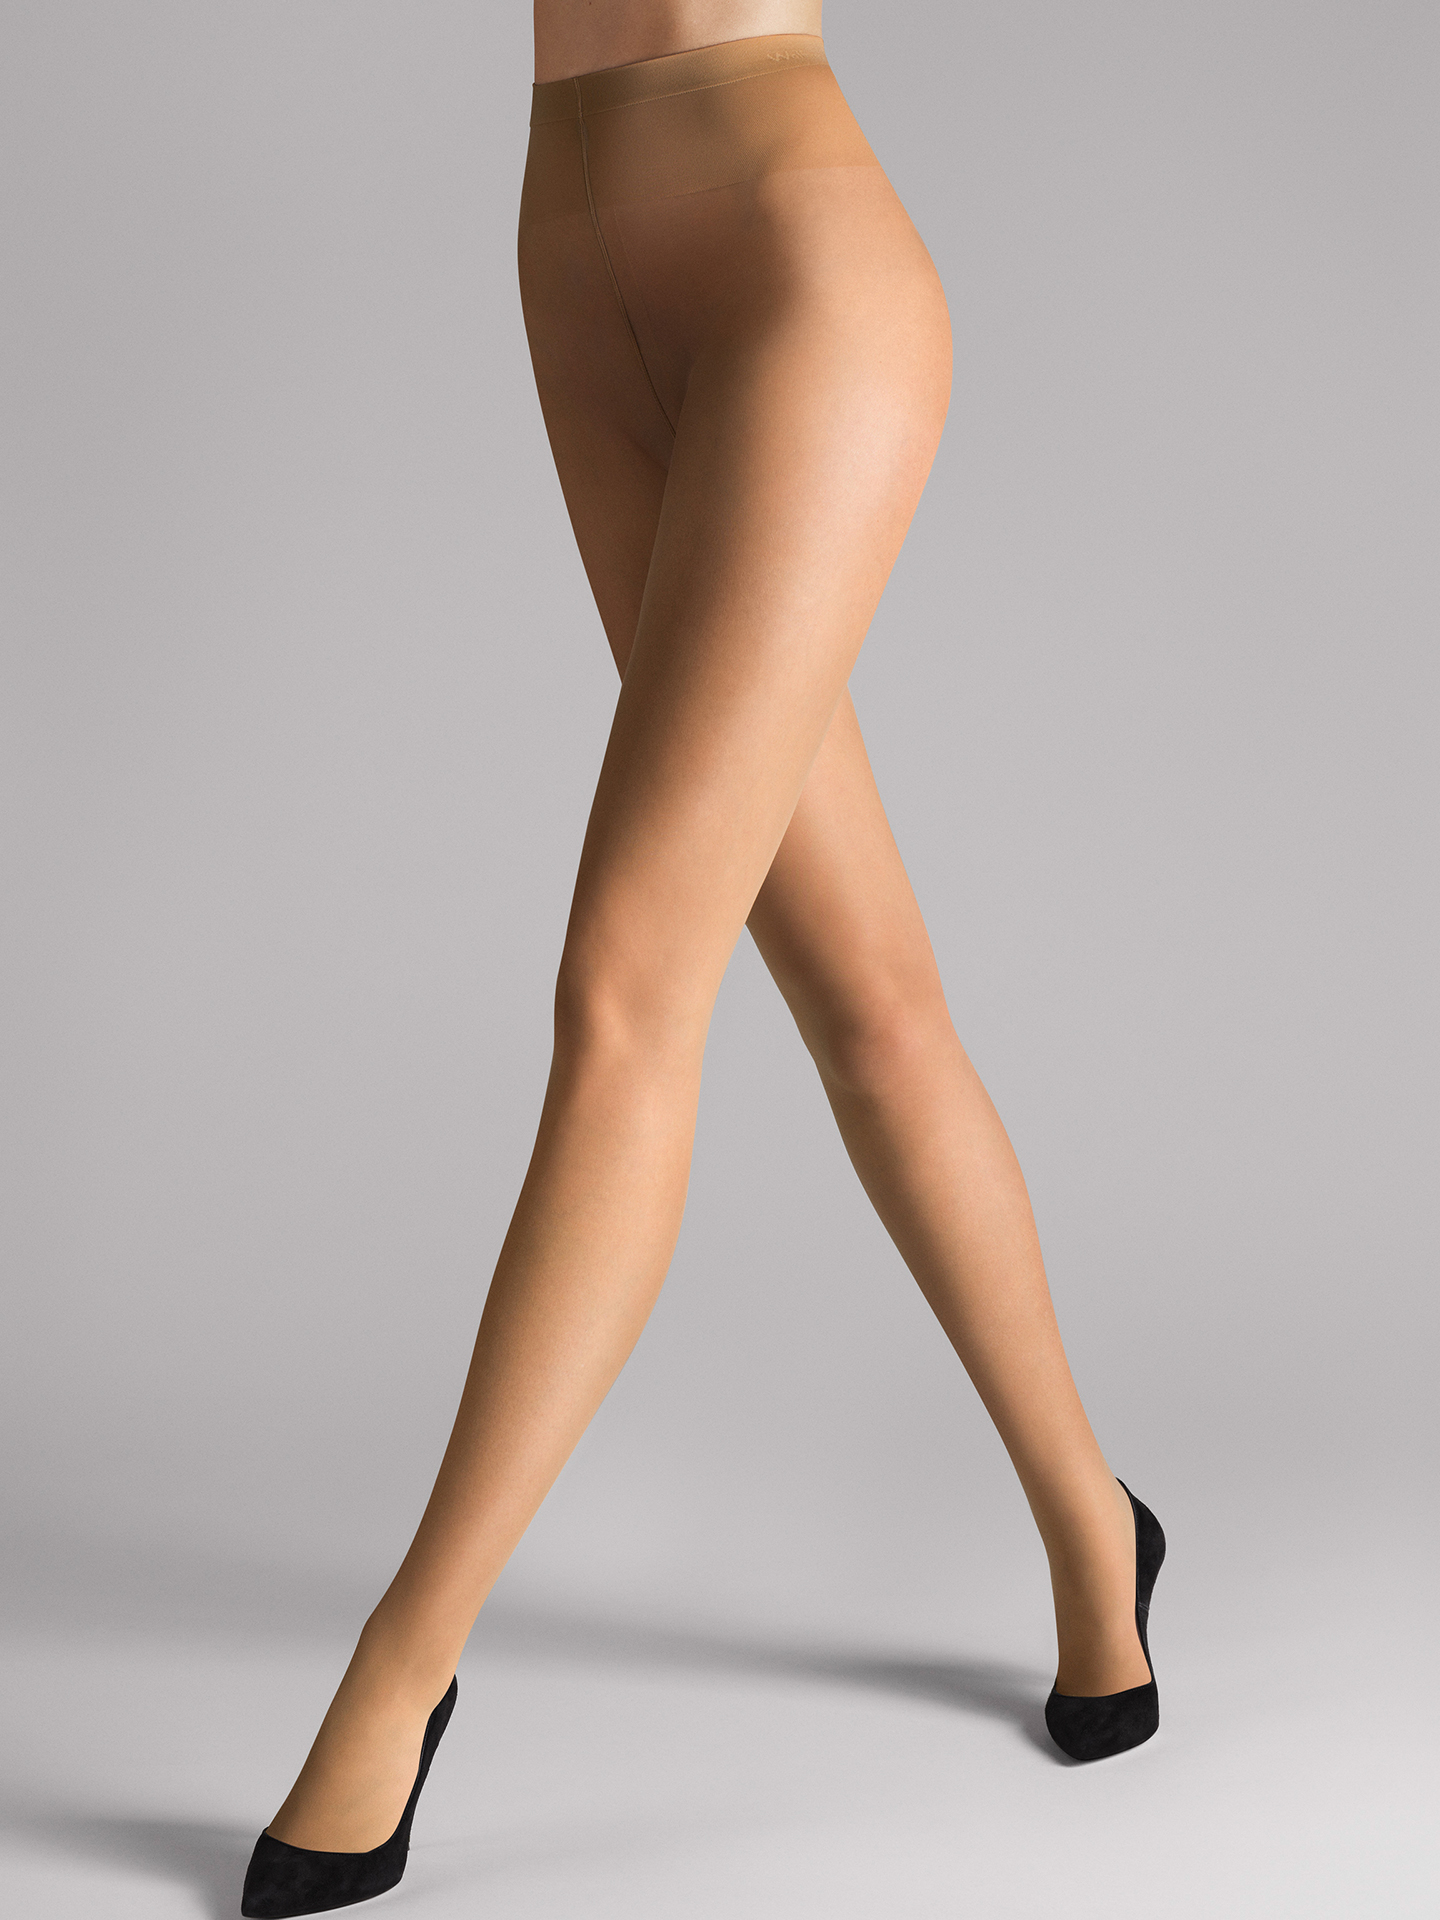 Wolford Apparel & Accessories > Clothing > Collant Individual 10 - 4060 - XS